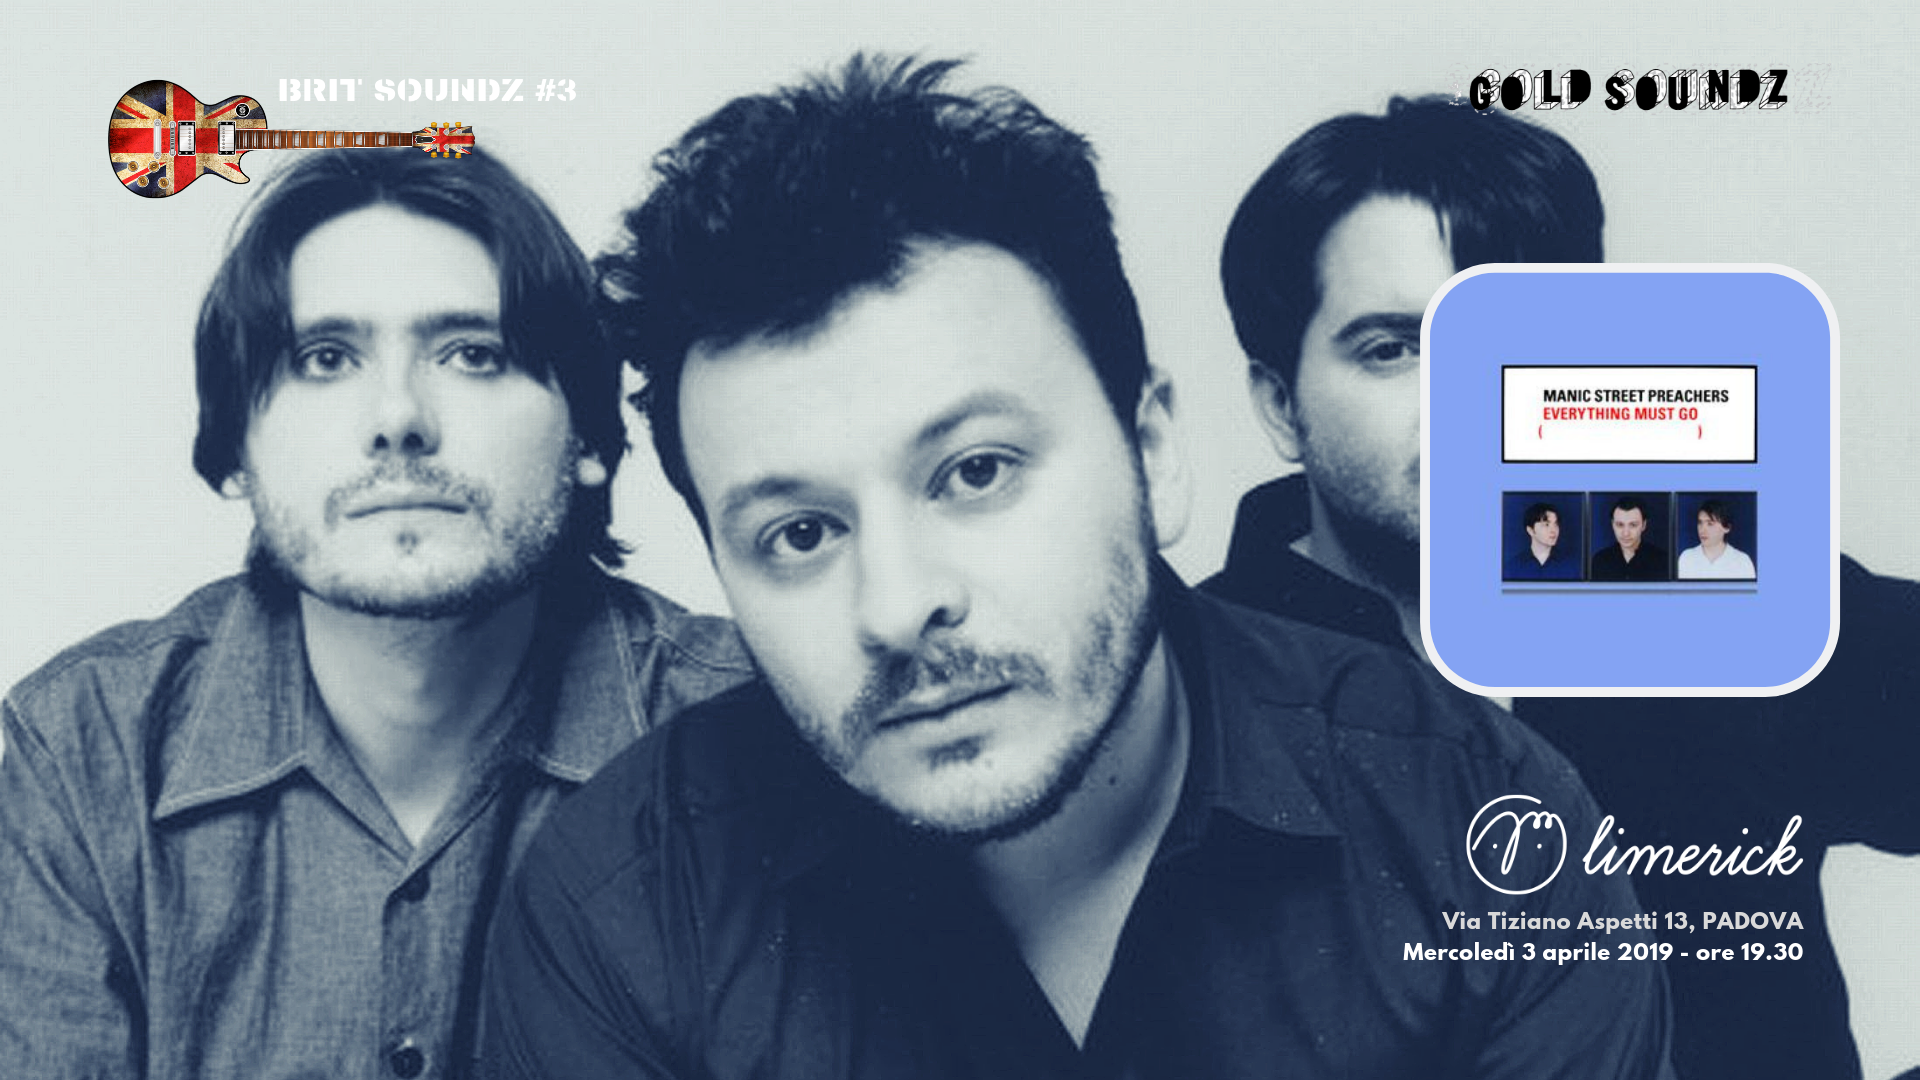 Manic Street Preachers Everything Must Go audioforum Gold Soundz Padova 2019